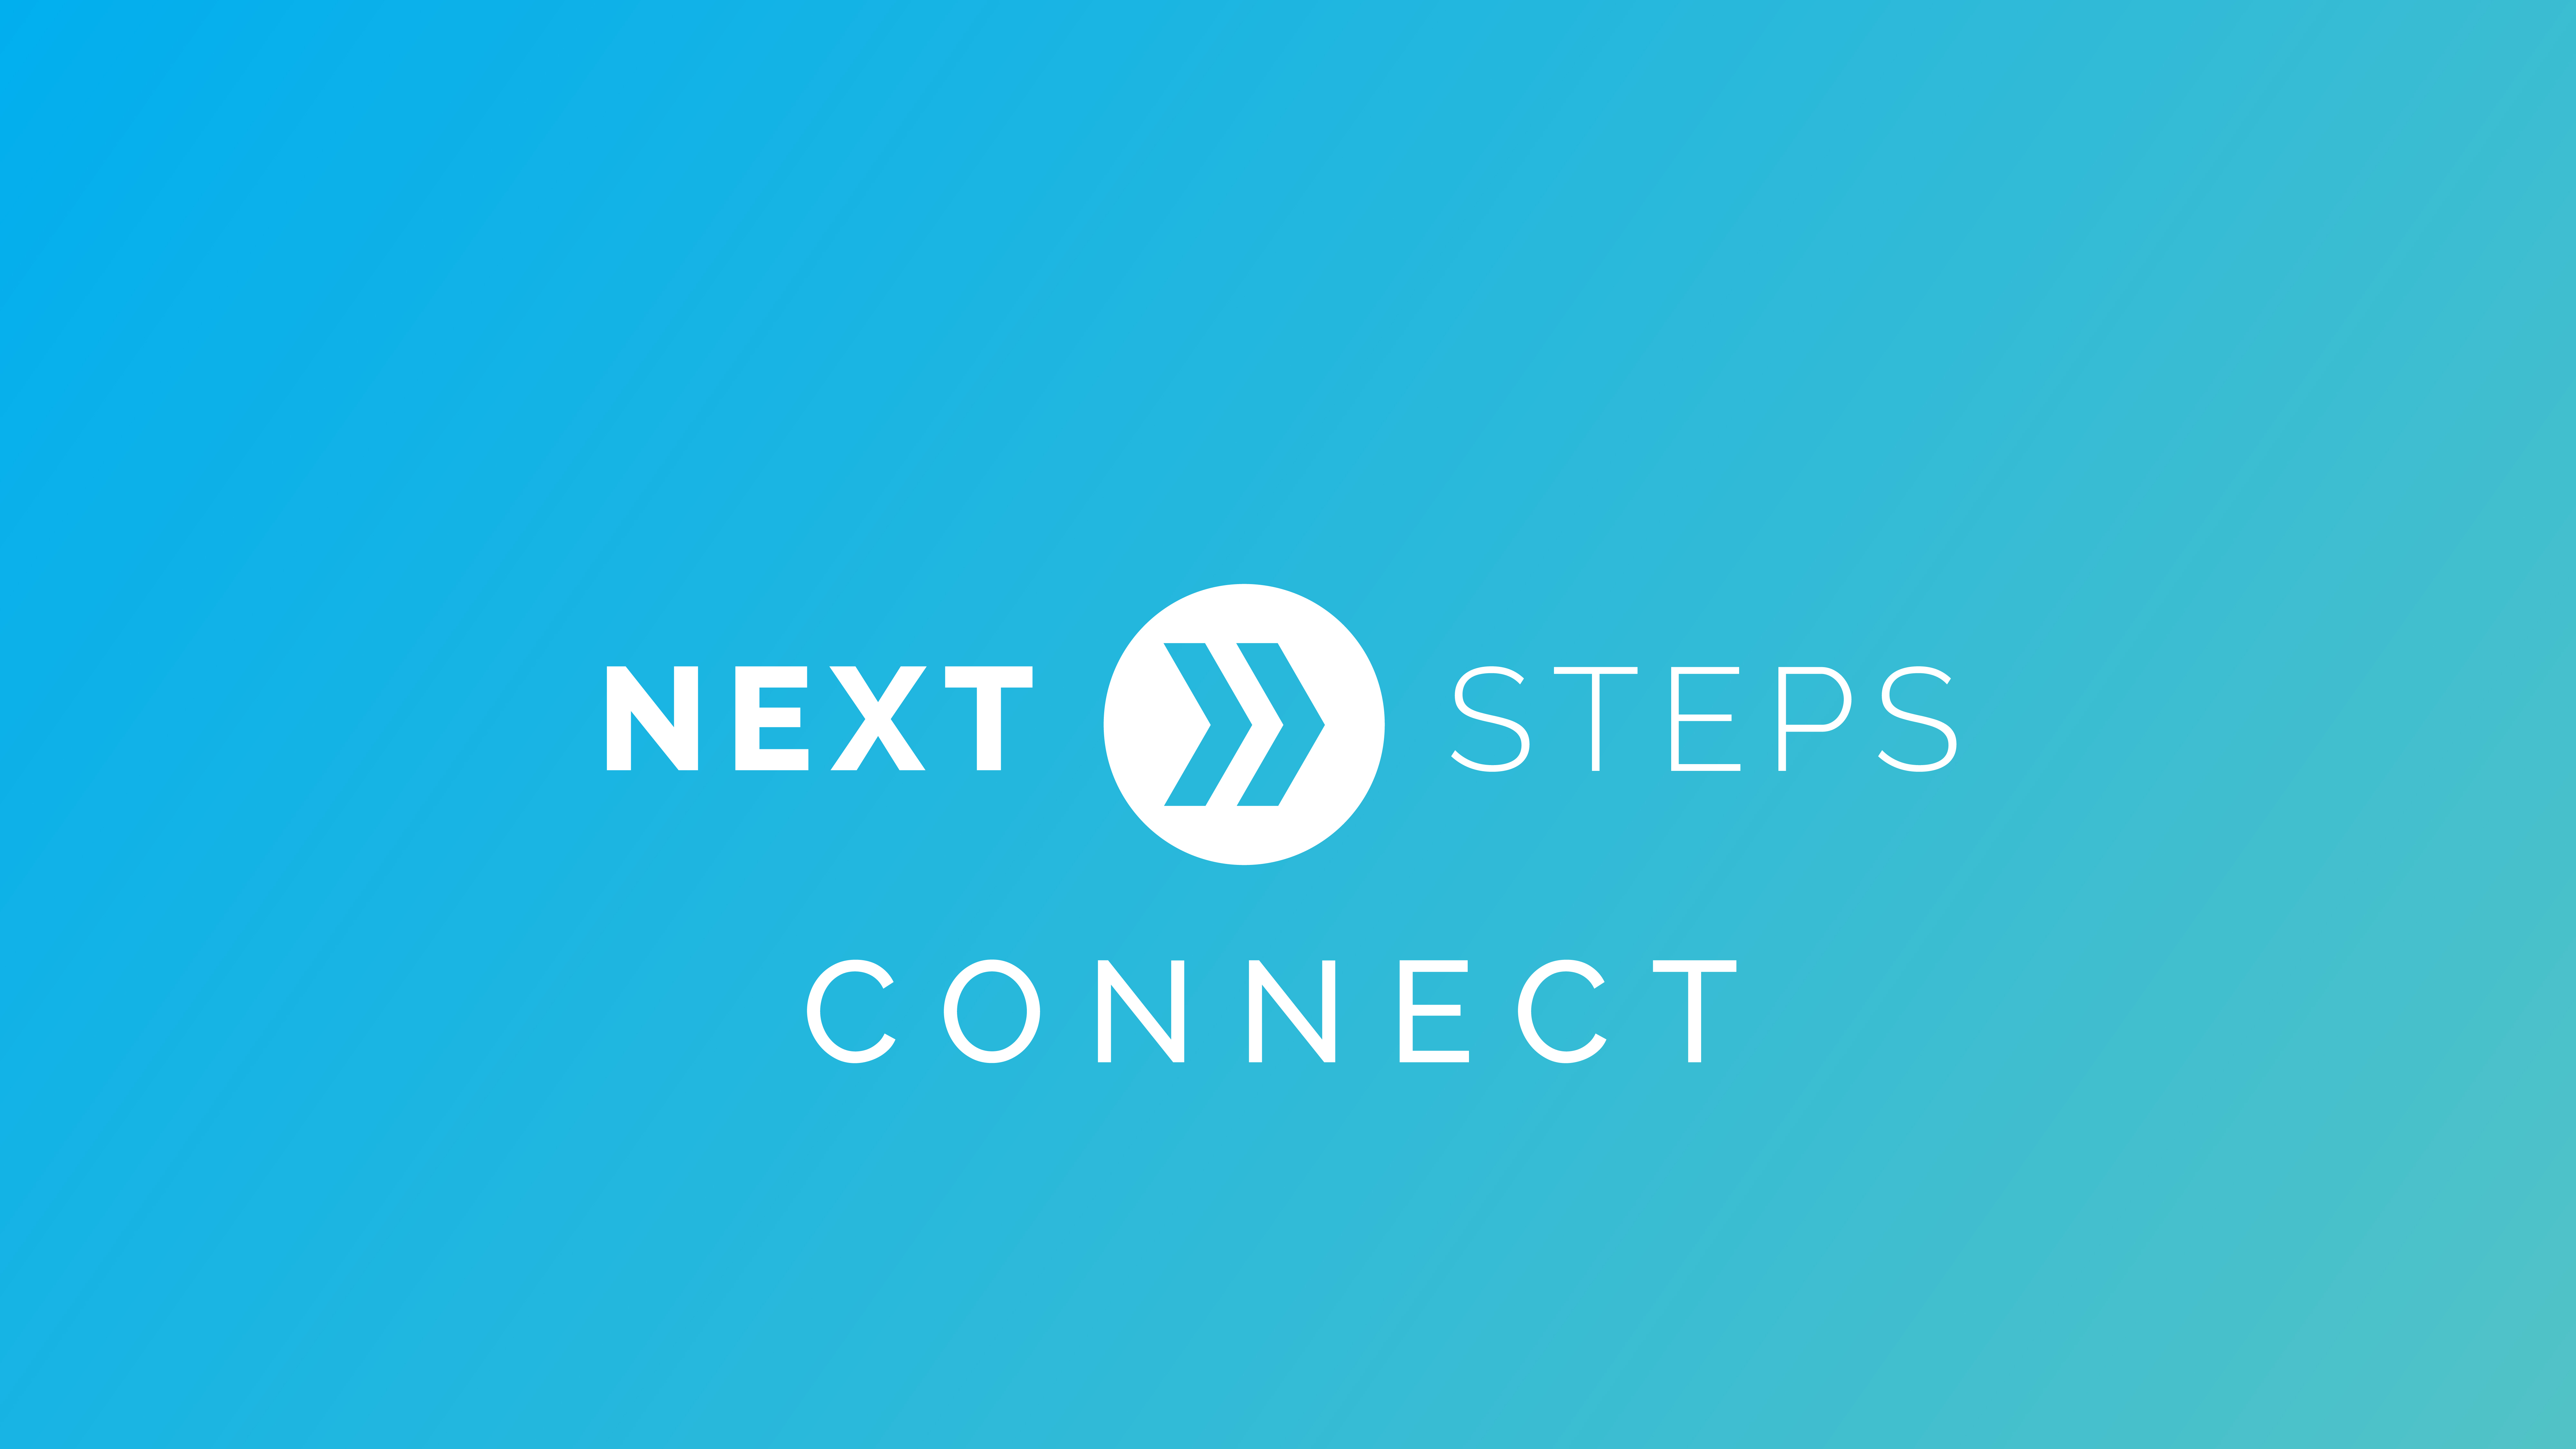 Next steps   connect graphic